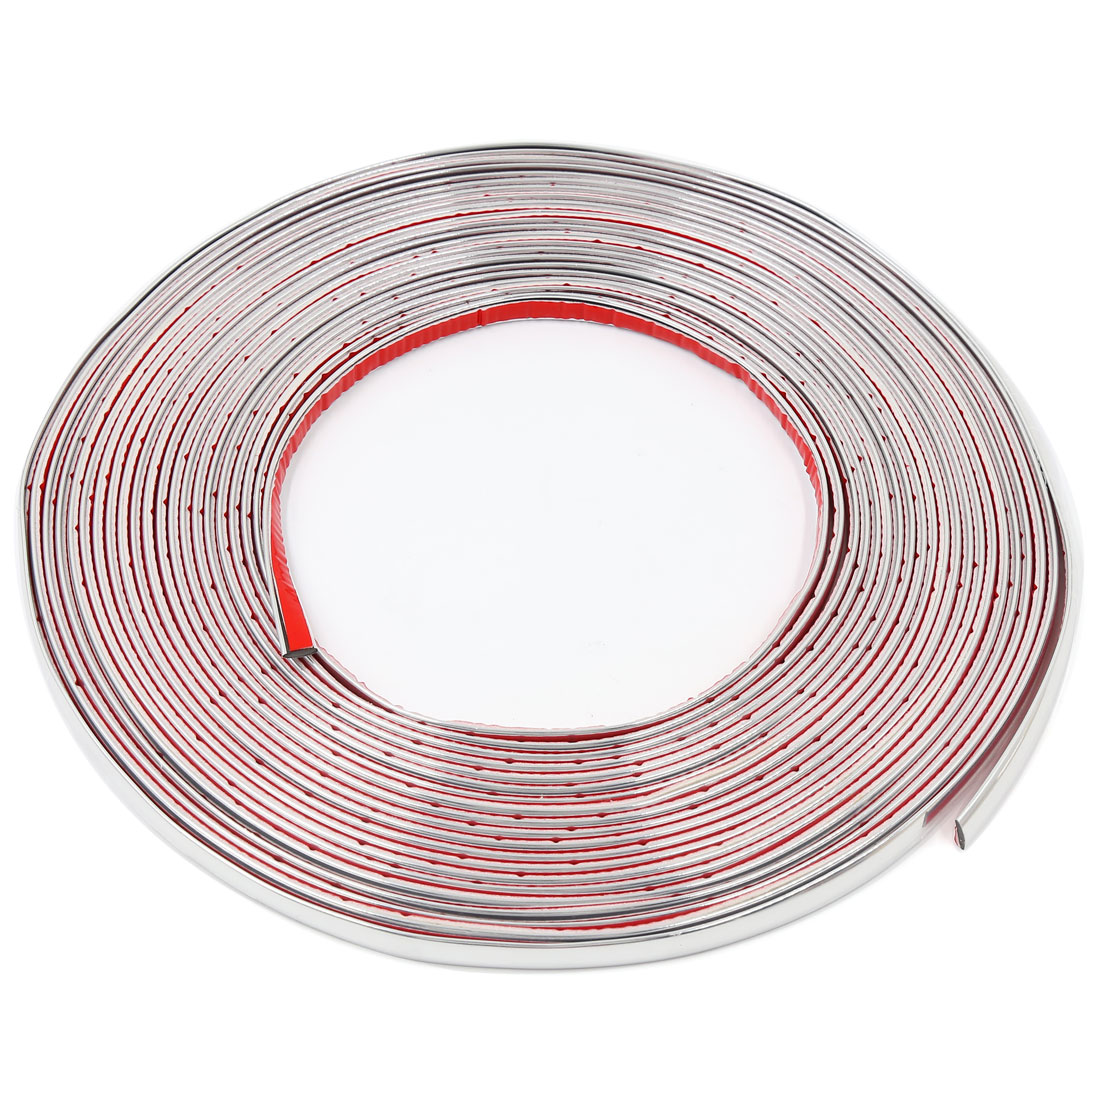 15M x 10MM Flexible Car Moulding Line Interior External Decorative Trim Strip Silver Tone